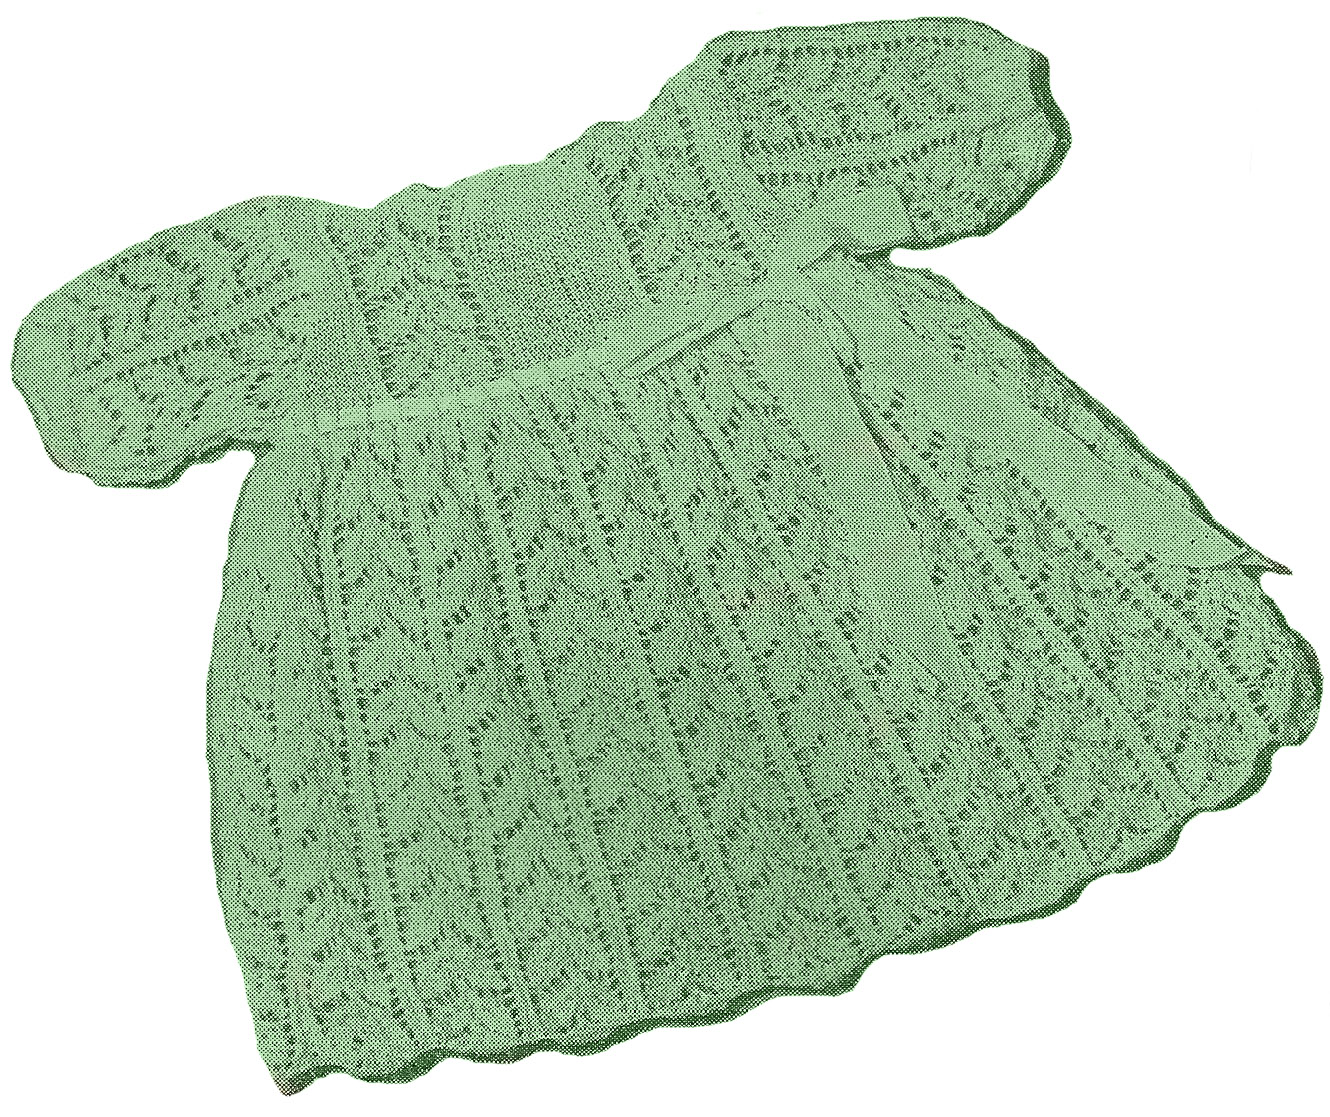 Sentimental Baby: Vintage Knit Patterns for Babies